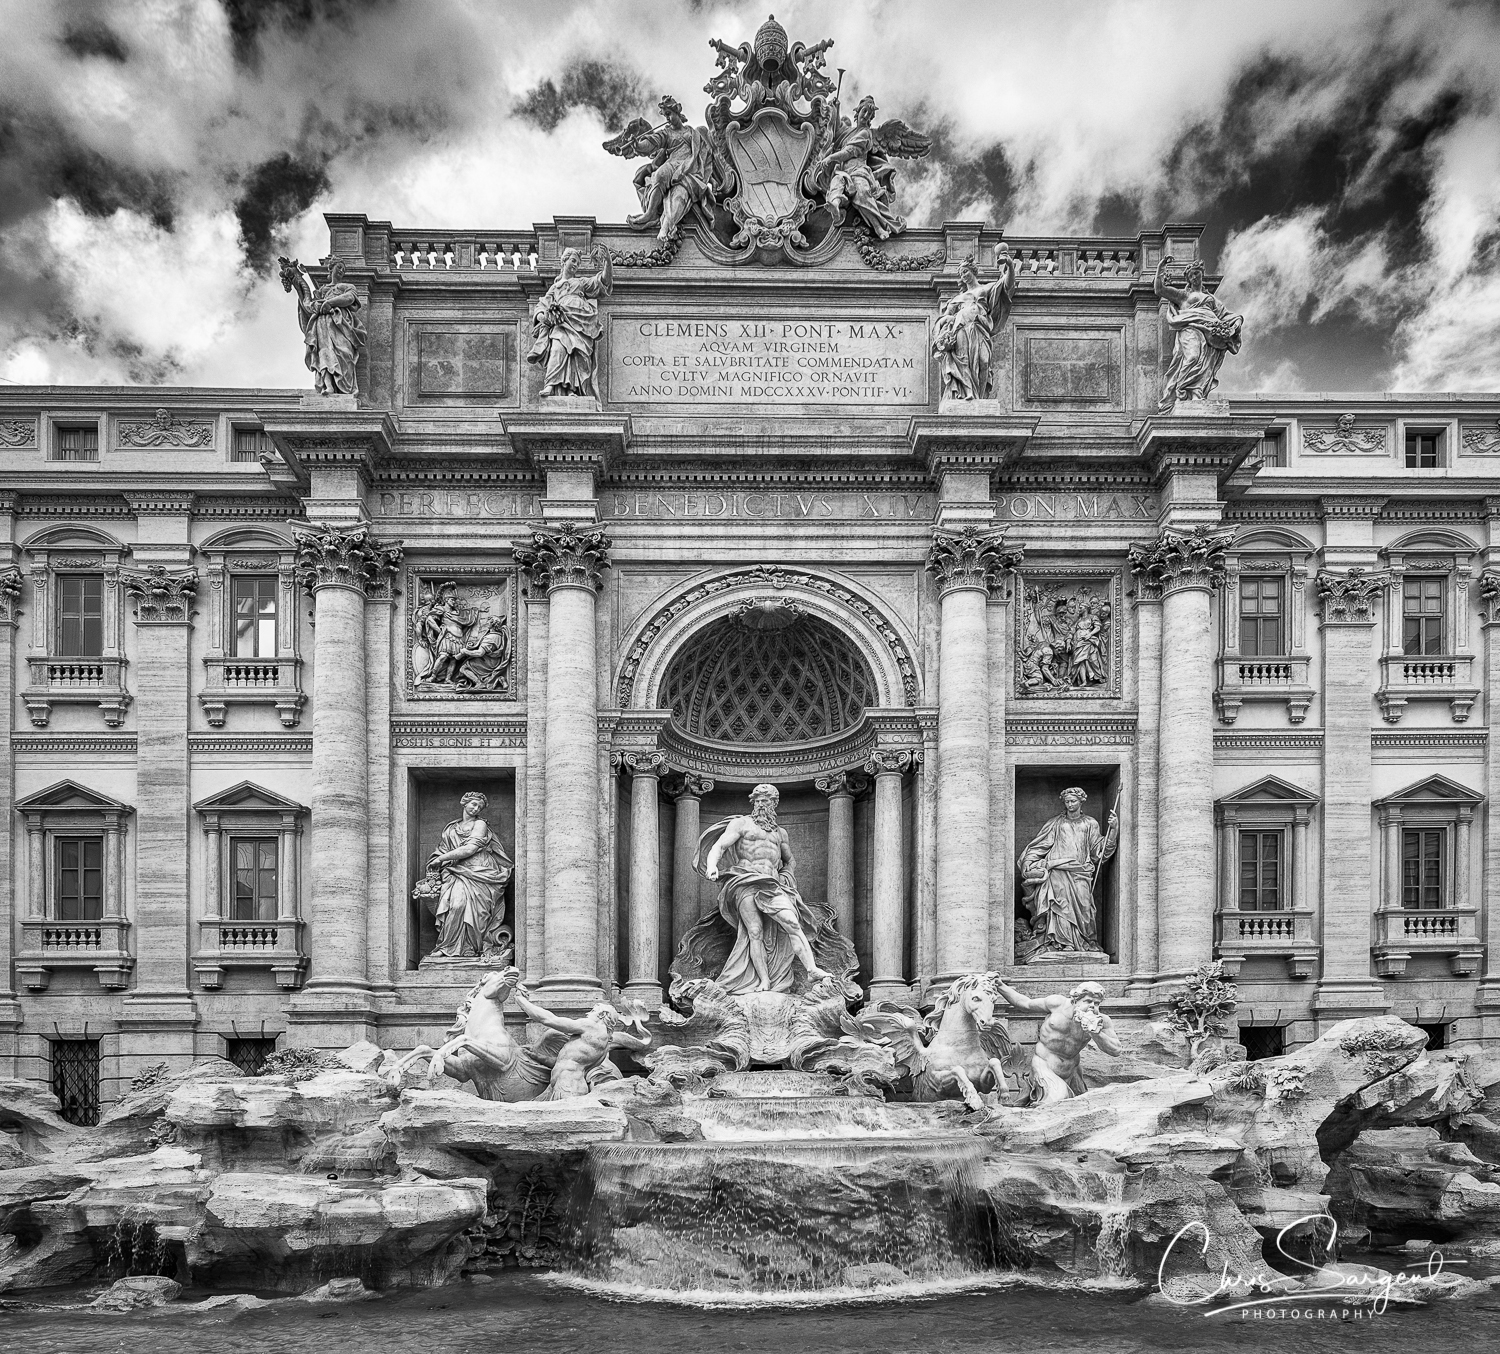 Trevi Fountain, Rome - Fuji X-T2 16mm f1.4